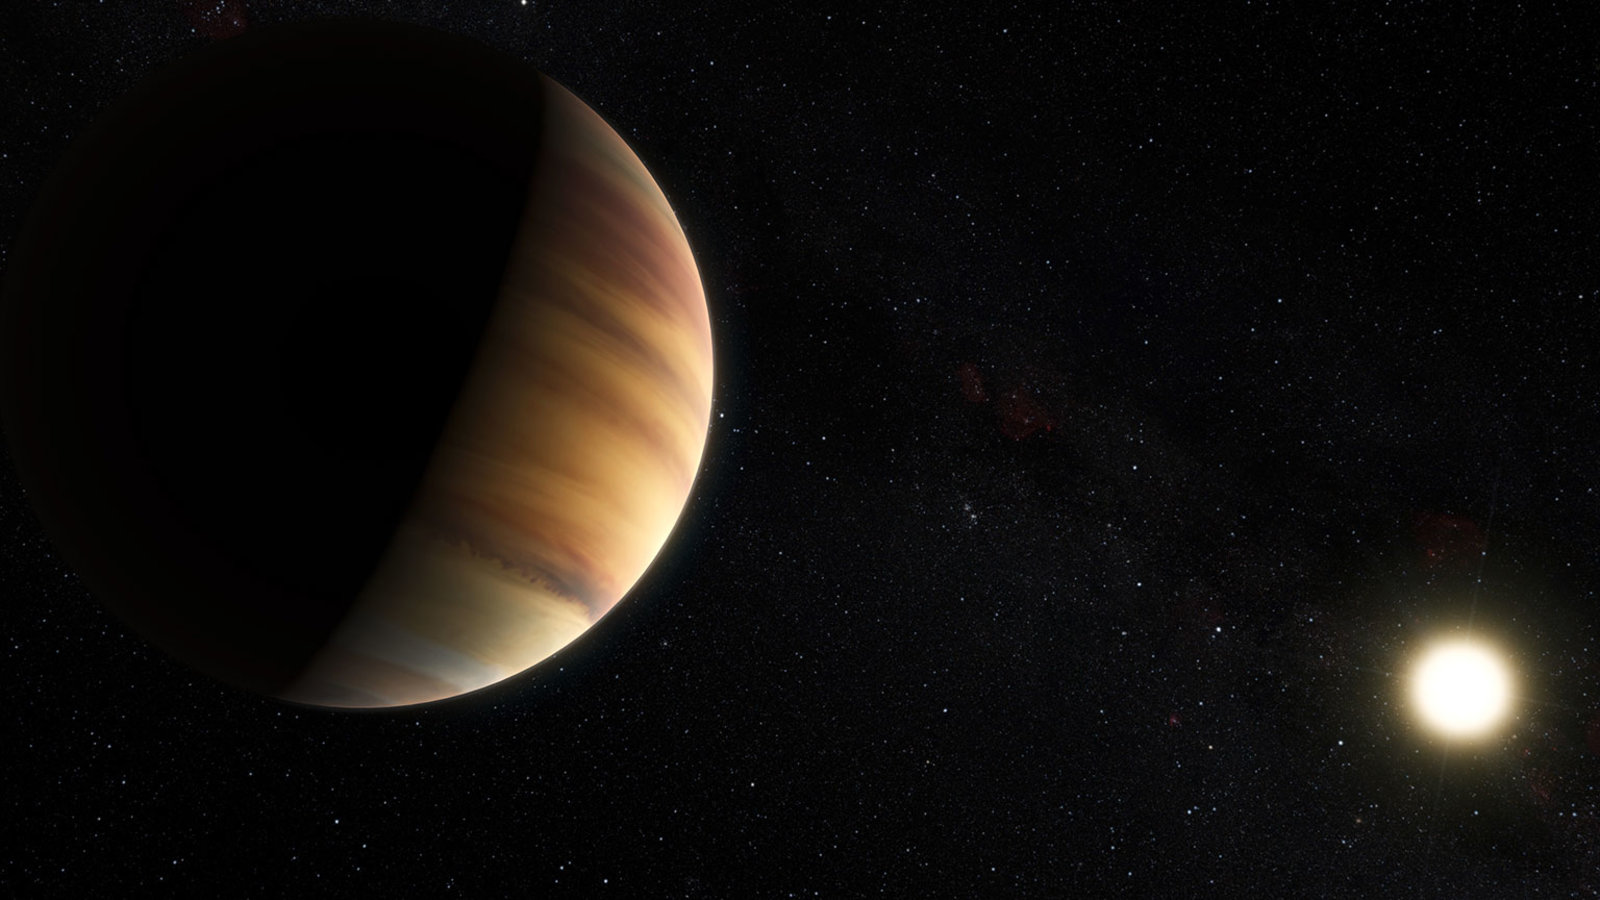 The Misplaced Giant Planets